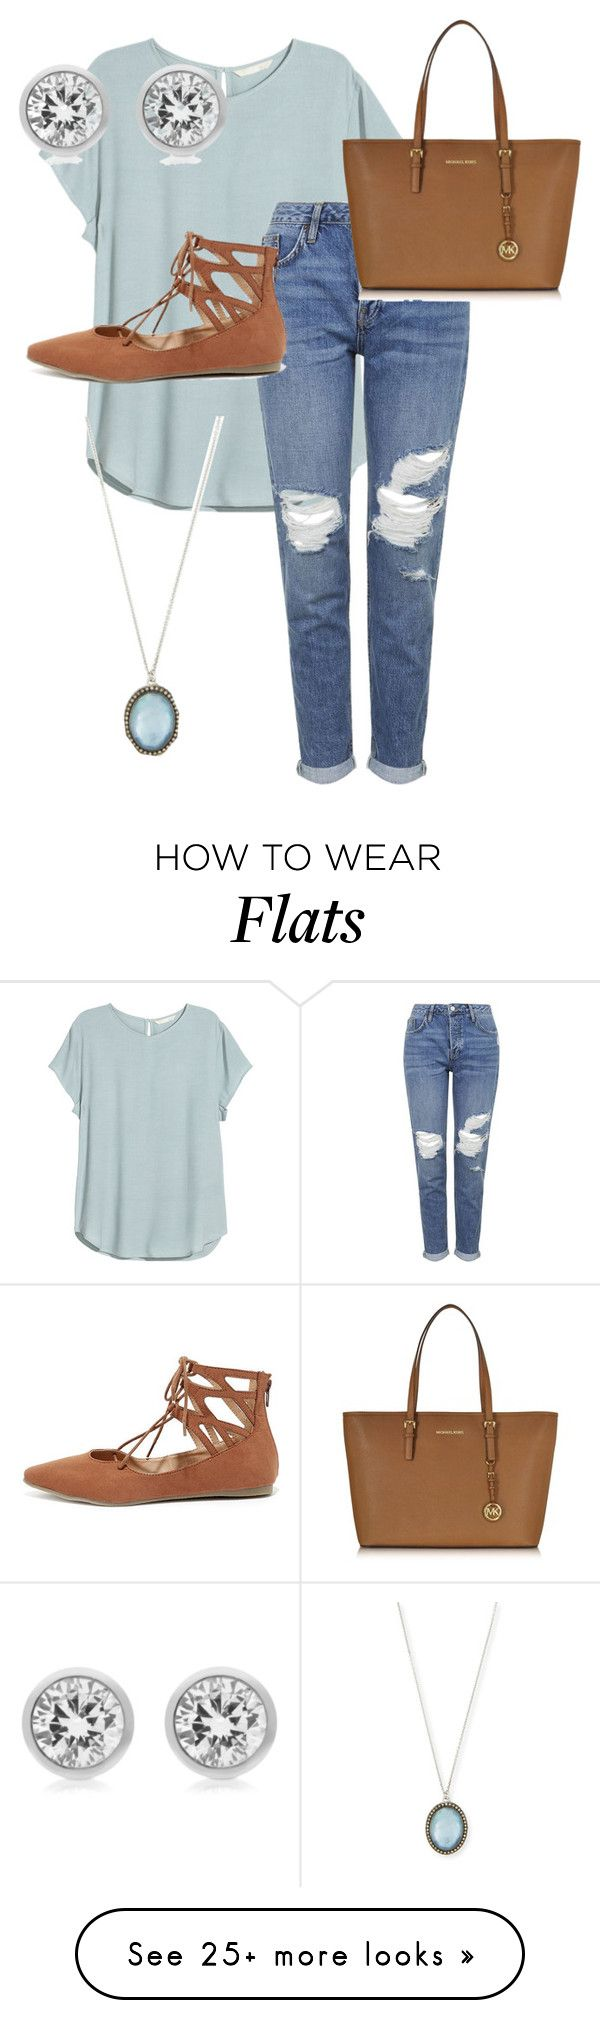 """download complete"" by qveenmedinaa on Polyvore featuring Topshop, Liliana, Michael Kors and Armenta"